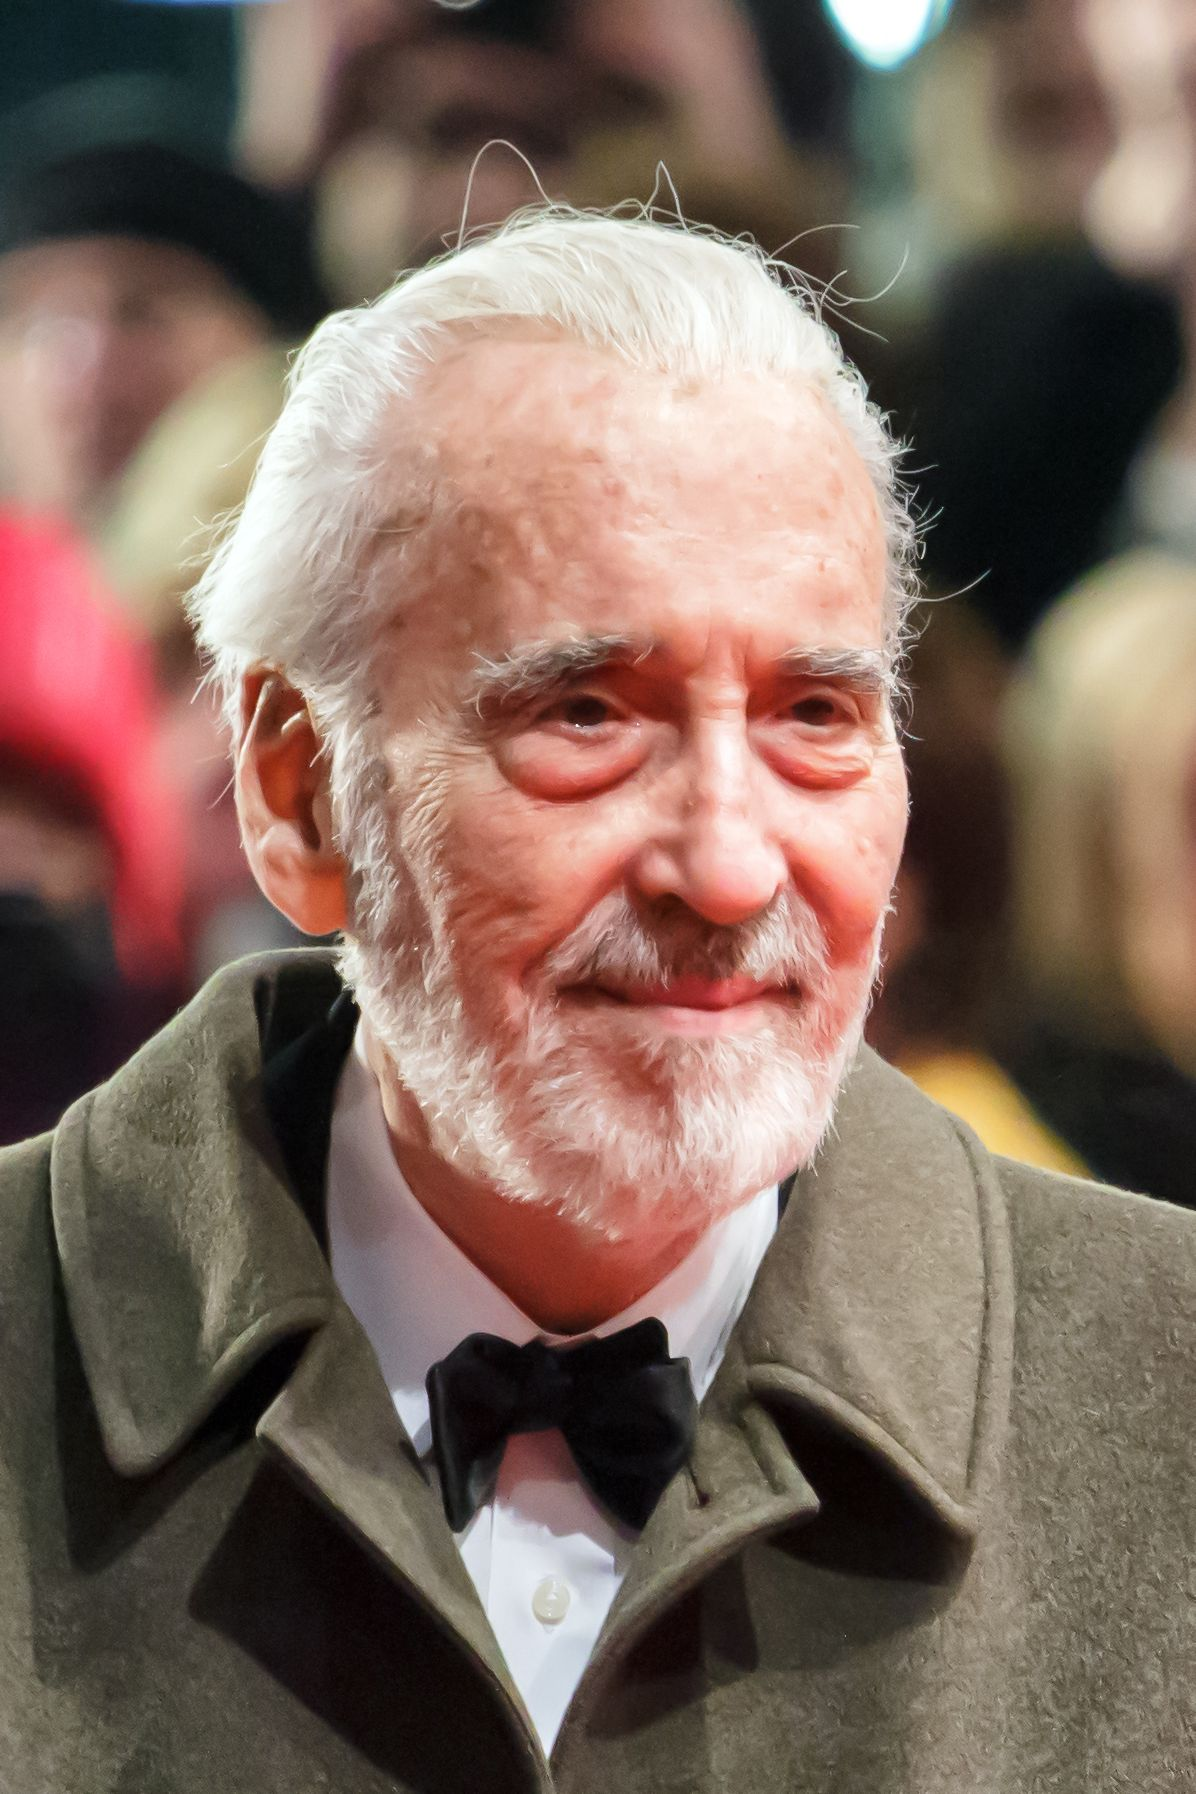 Christopher Lee:  Francisco Scaramanga in the James Bond, Saruman in The Lord of the Rings film trilogy and The Hobbit film trilogy, and Count Dooku in the final two films of the Star Wars prequel trilogy (Can anyone say I wish this was my grandfather?????)